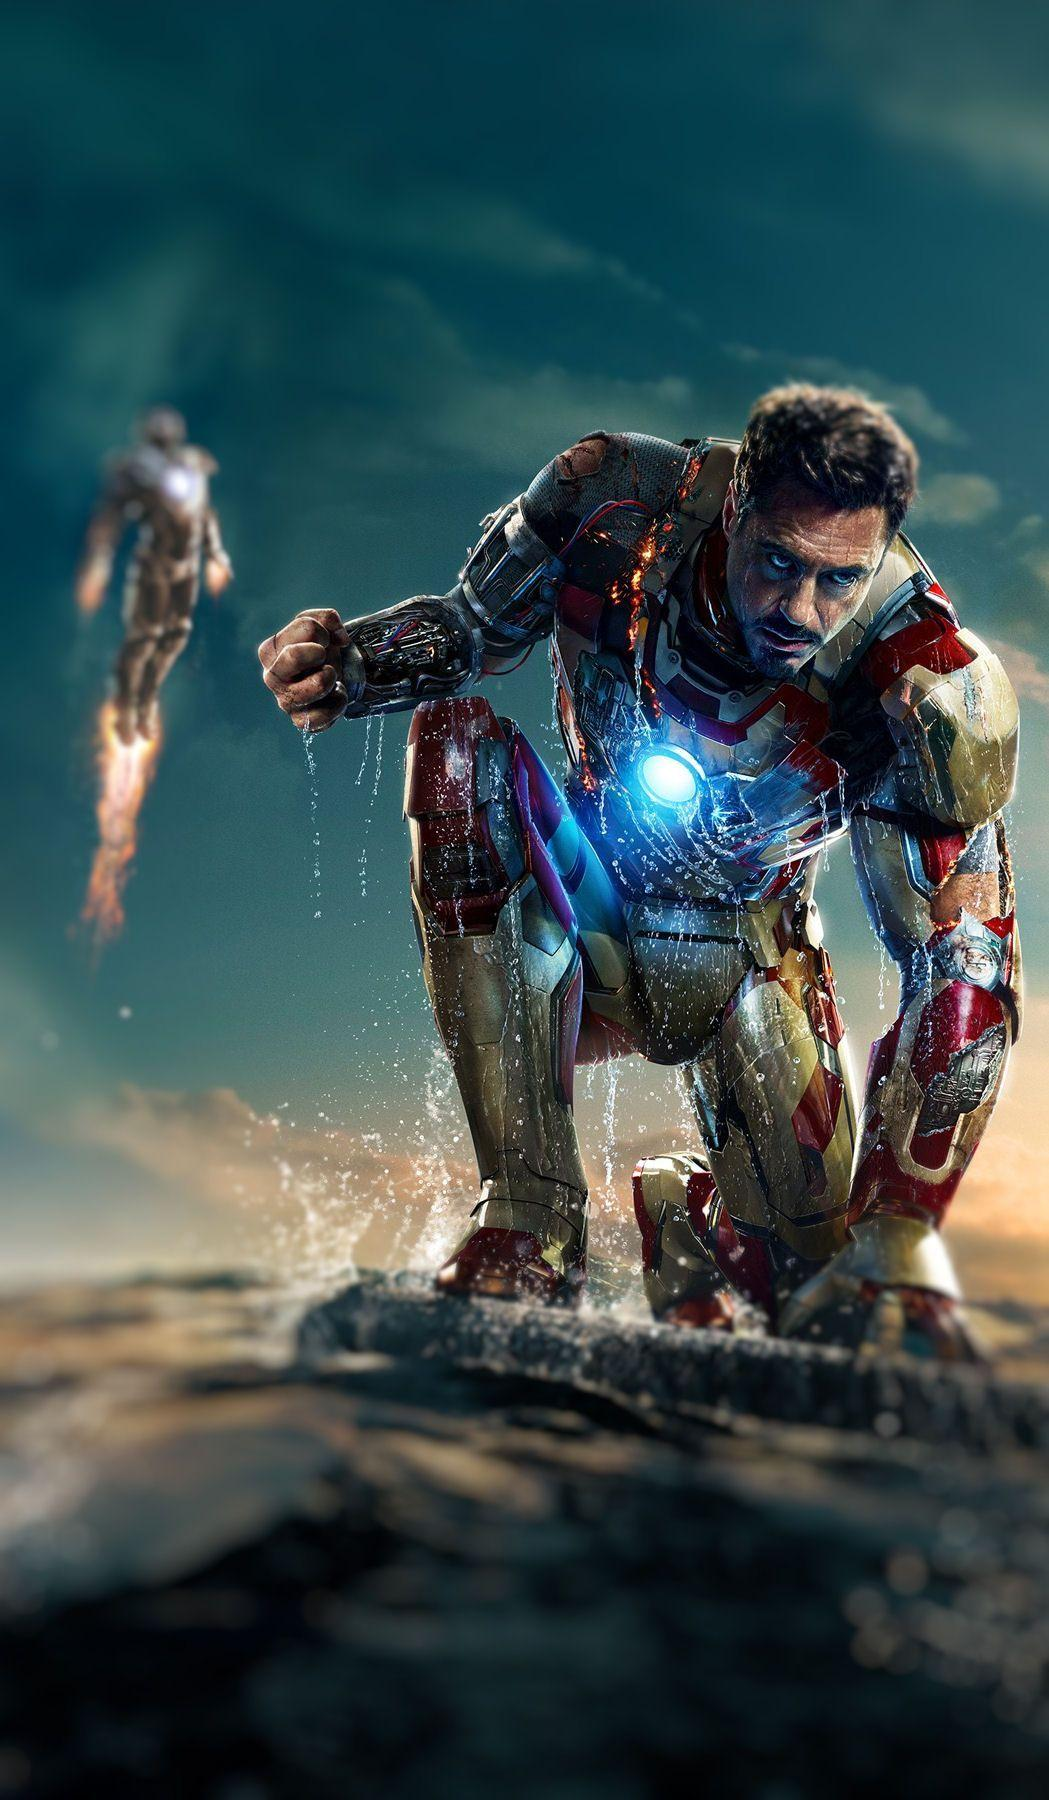 Cool Iron Man Phone Wallpapers Wallpaper Cave